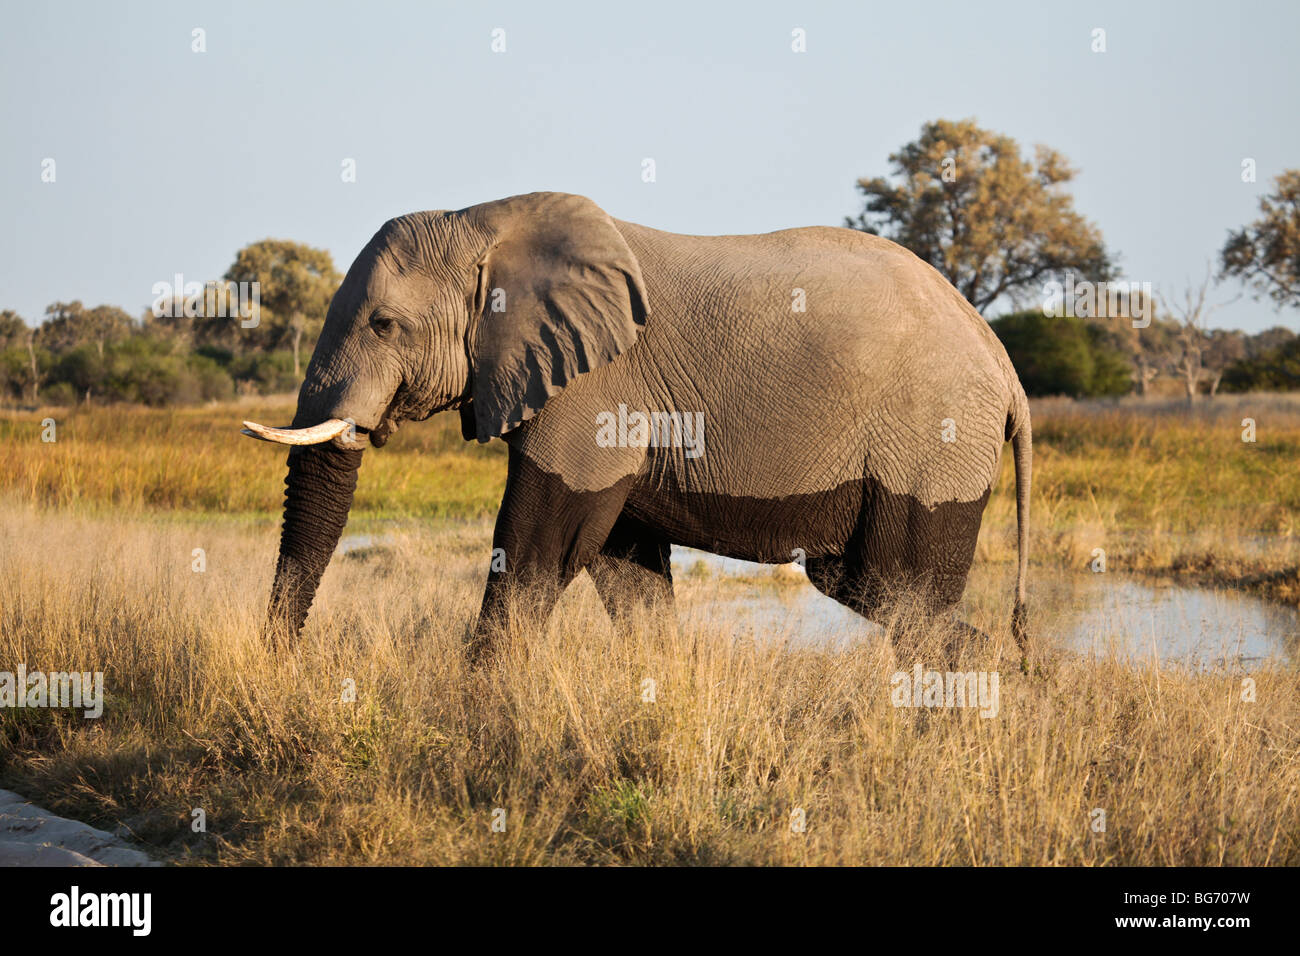 Male African Elephant with 'tidemark', leaving a waterhole in Moremi Game Reserve in northern Botswana. - Stock Image